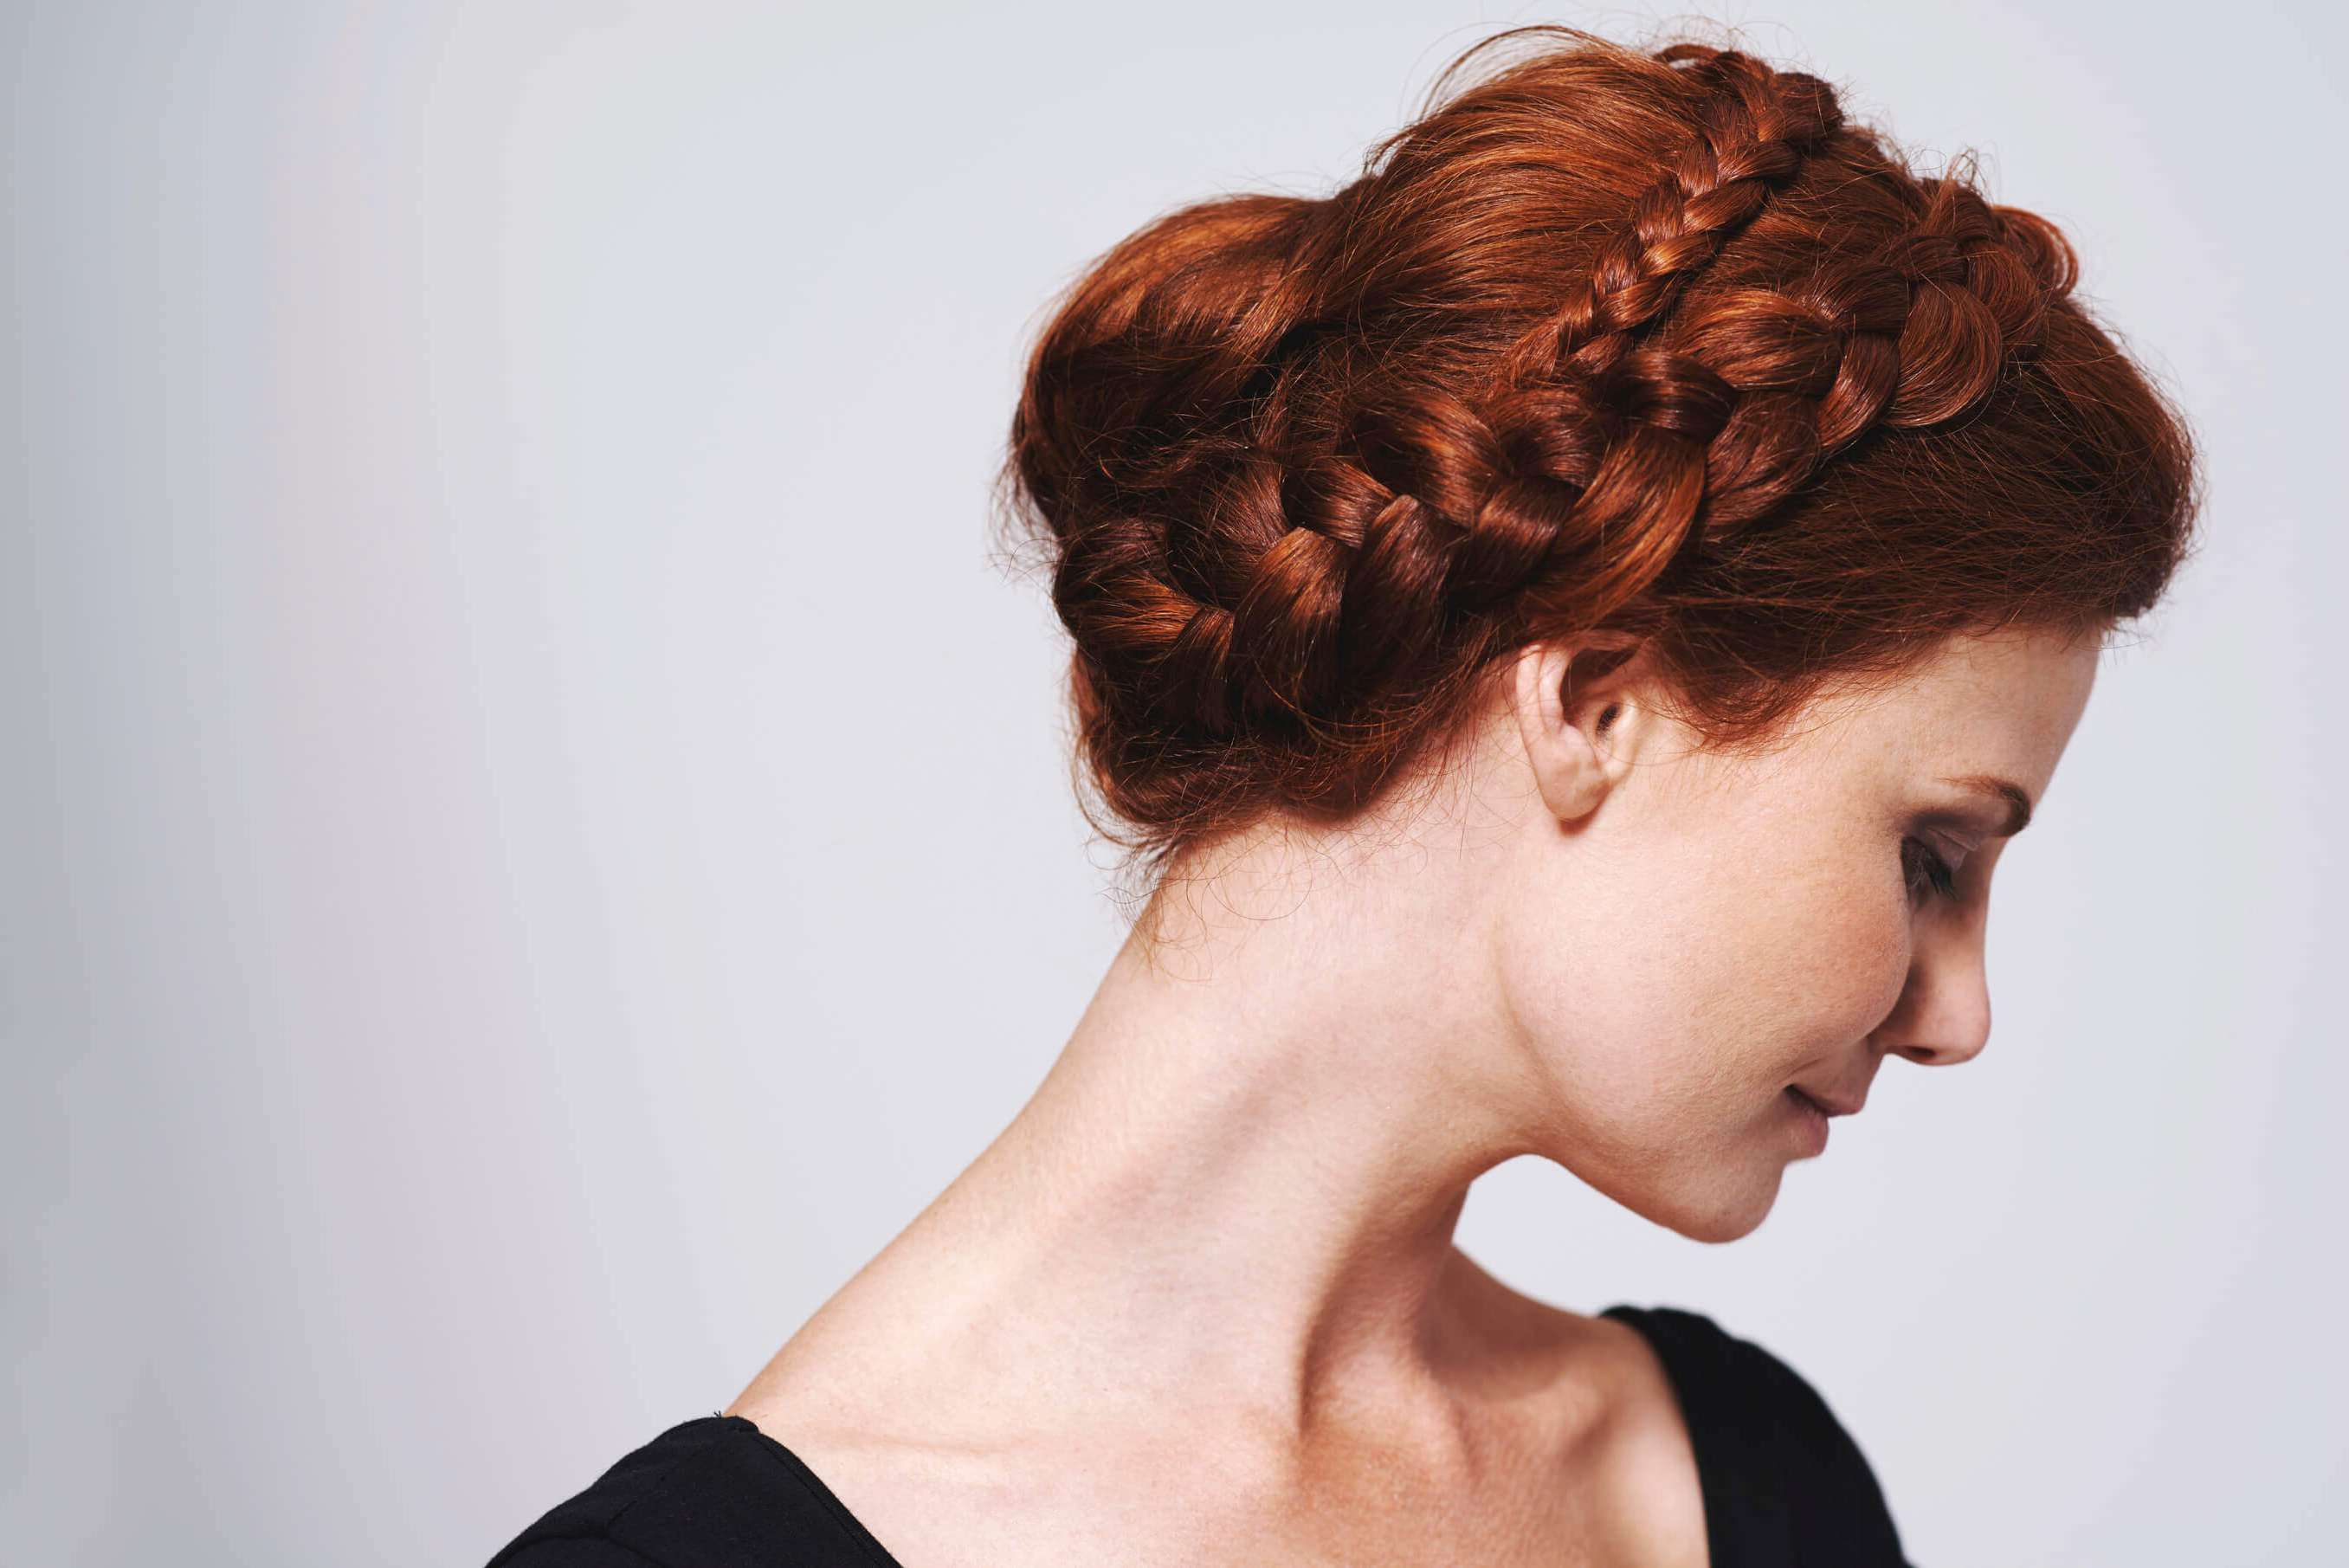 Most Current Messy Bun Hairstyles With Double Headband In Braided Updo: 12 Trendy Hairstyles To Try For Work (View 14 of 20)